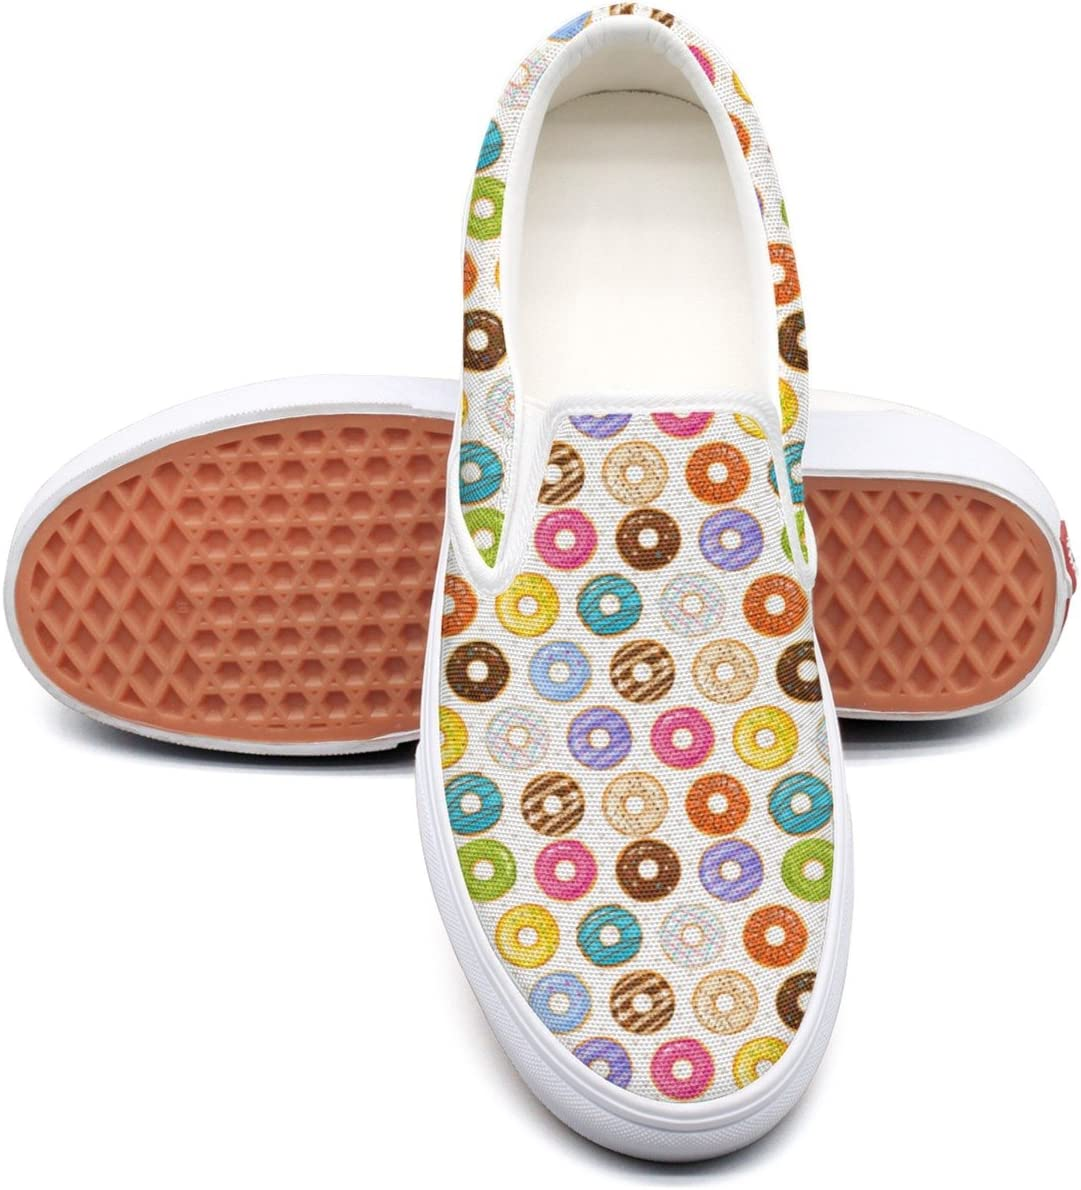 PDAQS Men Powdered Donut Dessert Background Donuts Casual Loafers Slip-on Trainers Low Top